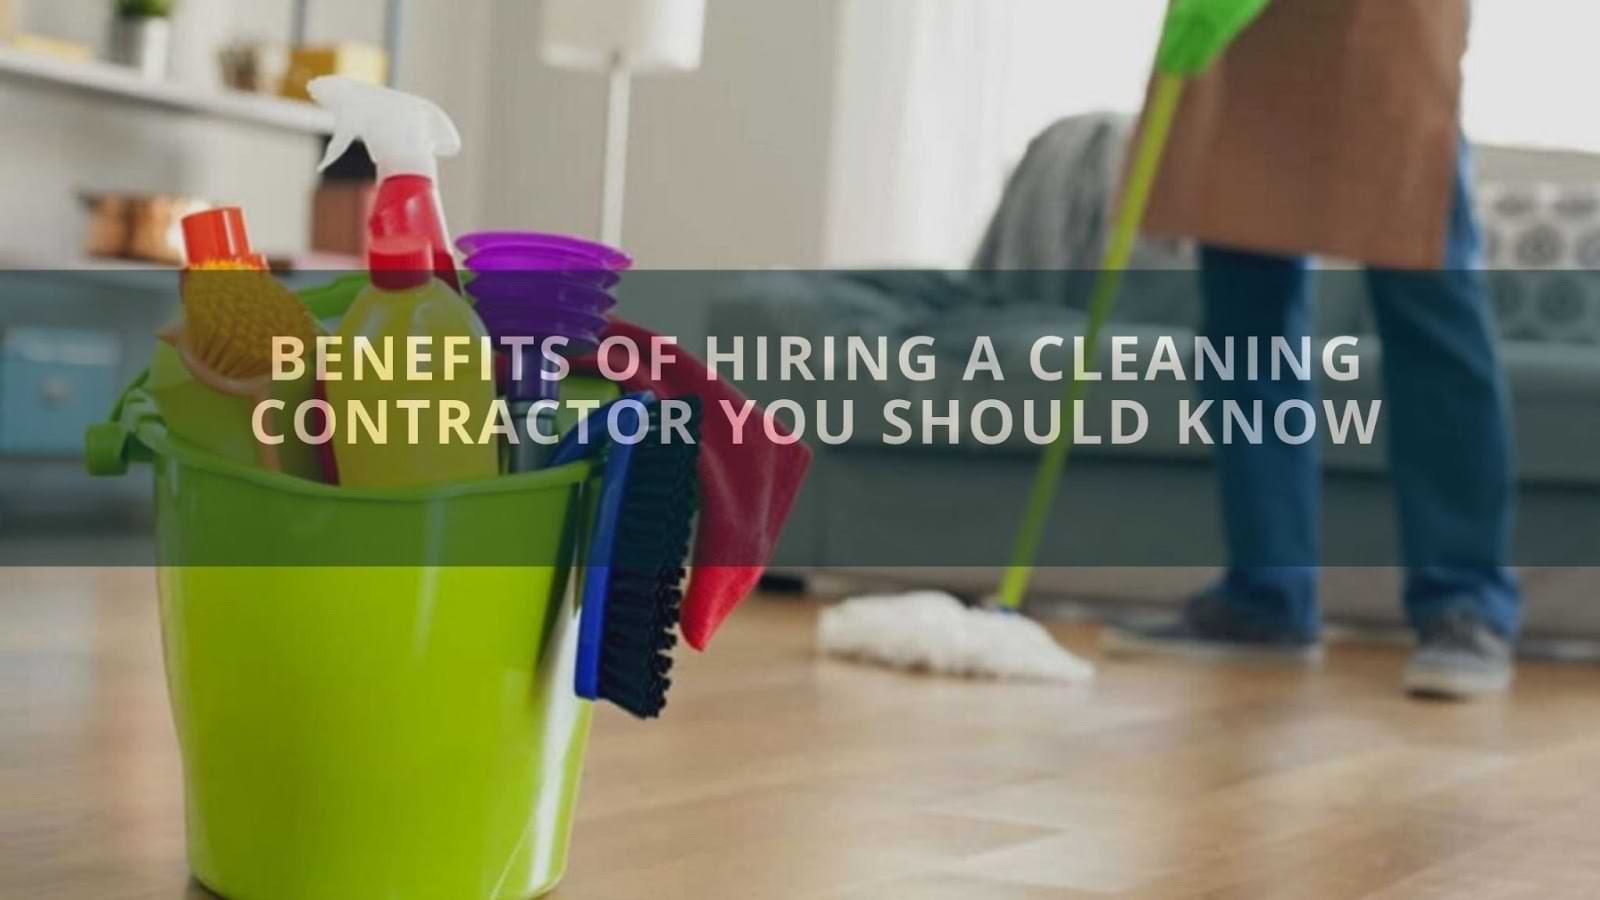 Benefits of Hiring a Cleaning Contractor You Should Know